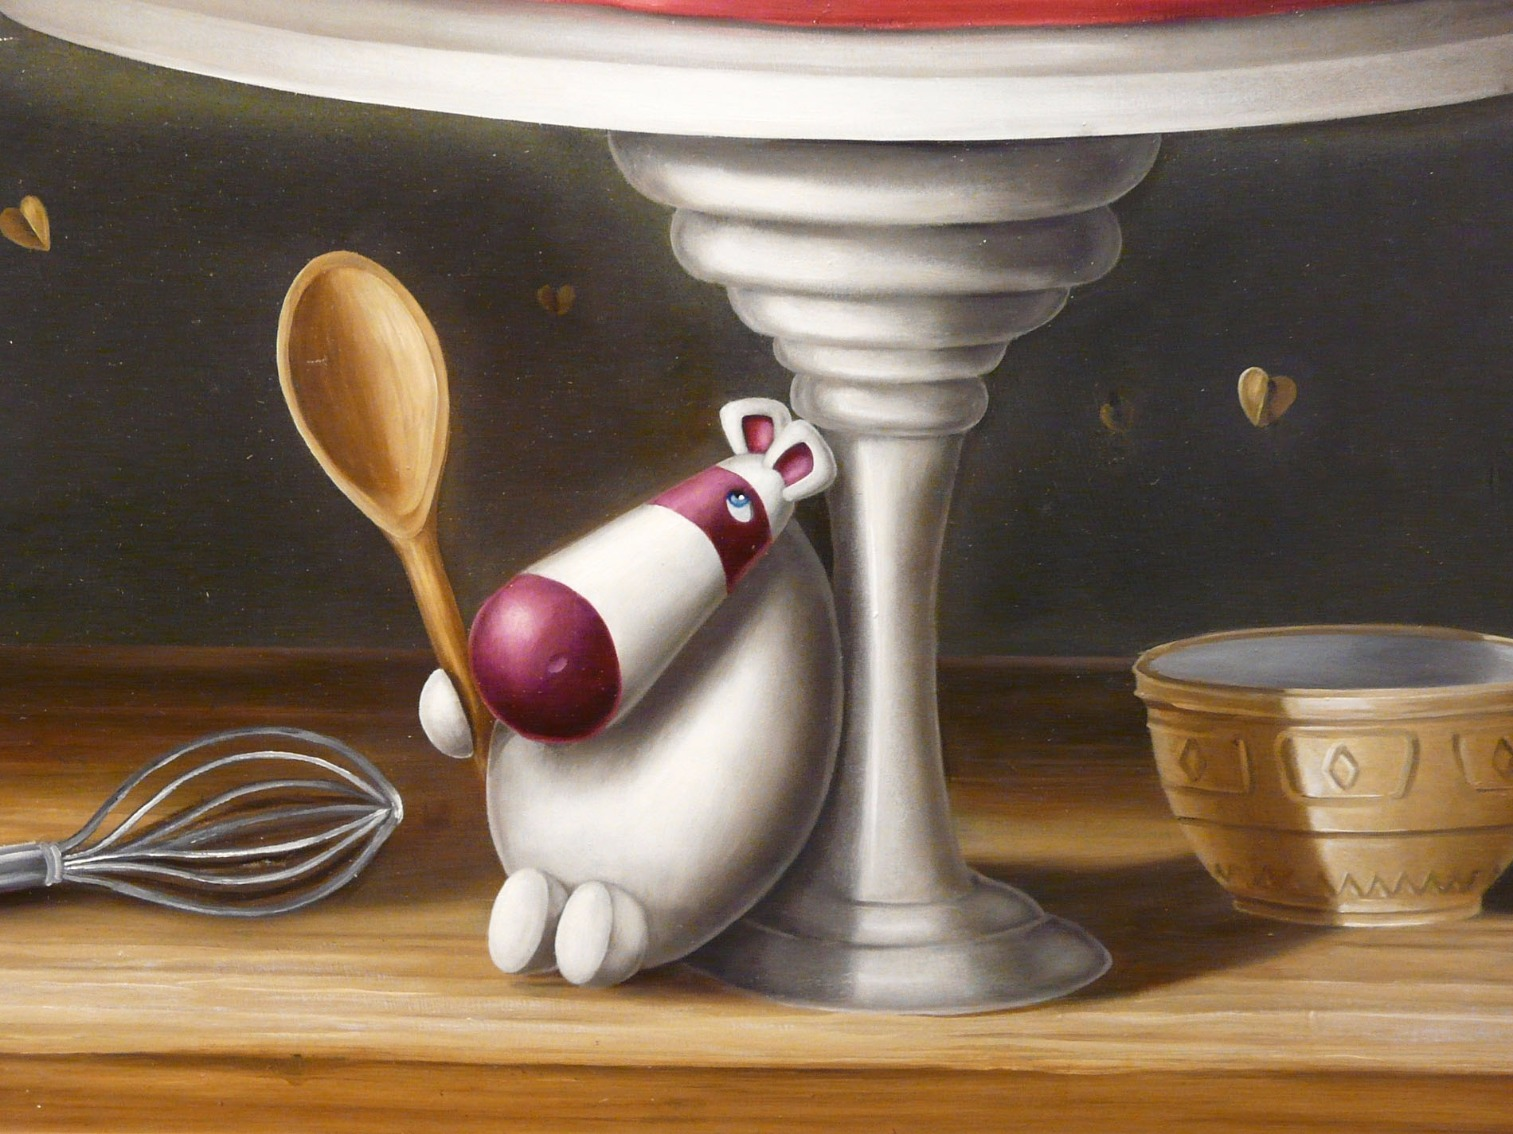 Bake off by Peter Smith, Naive | Family